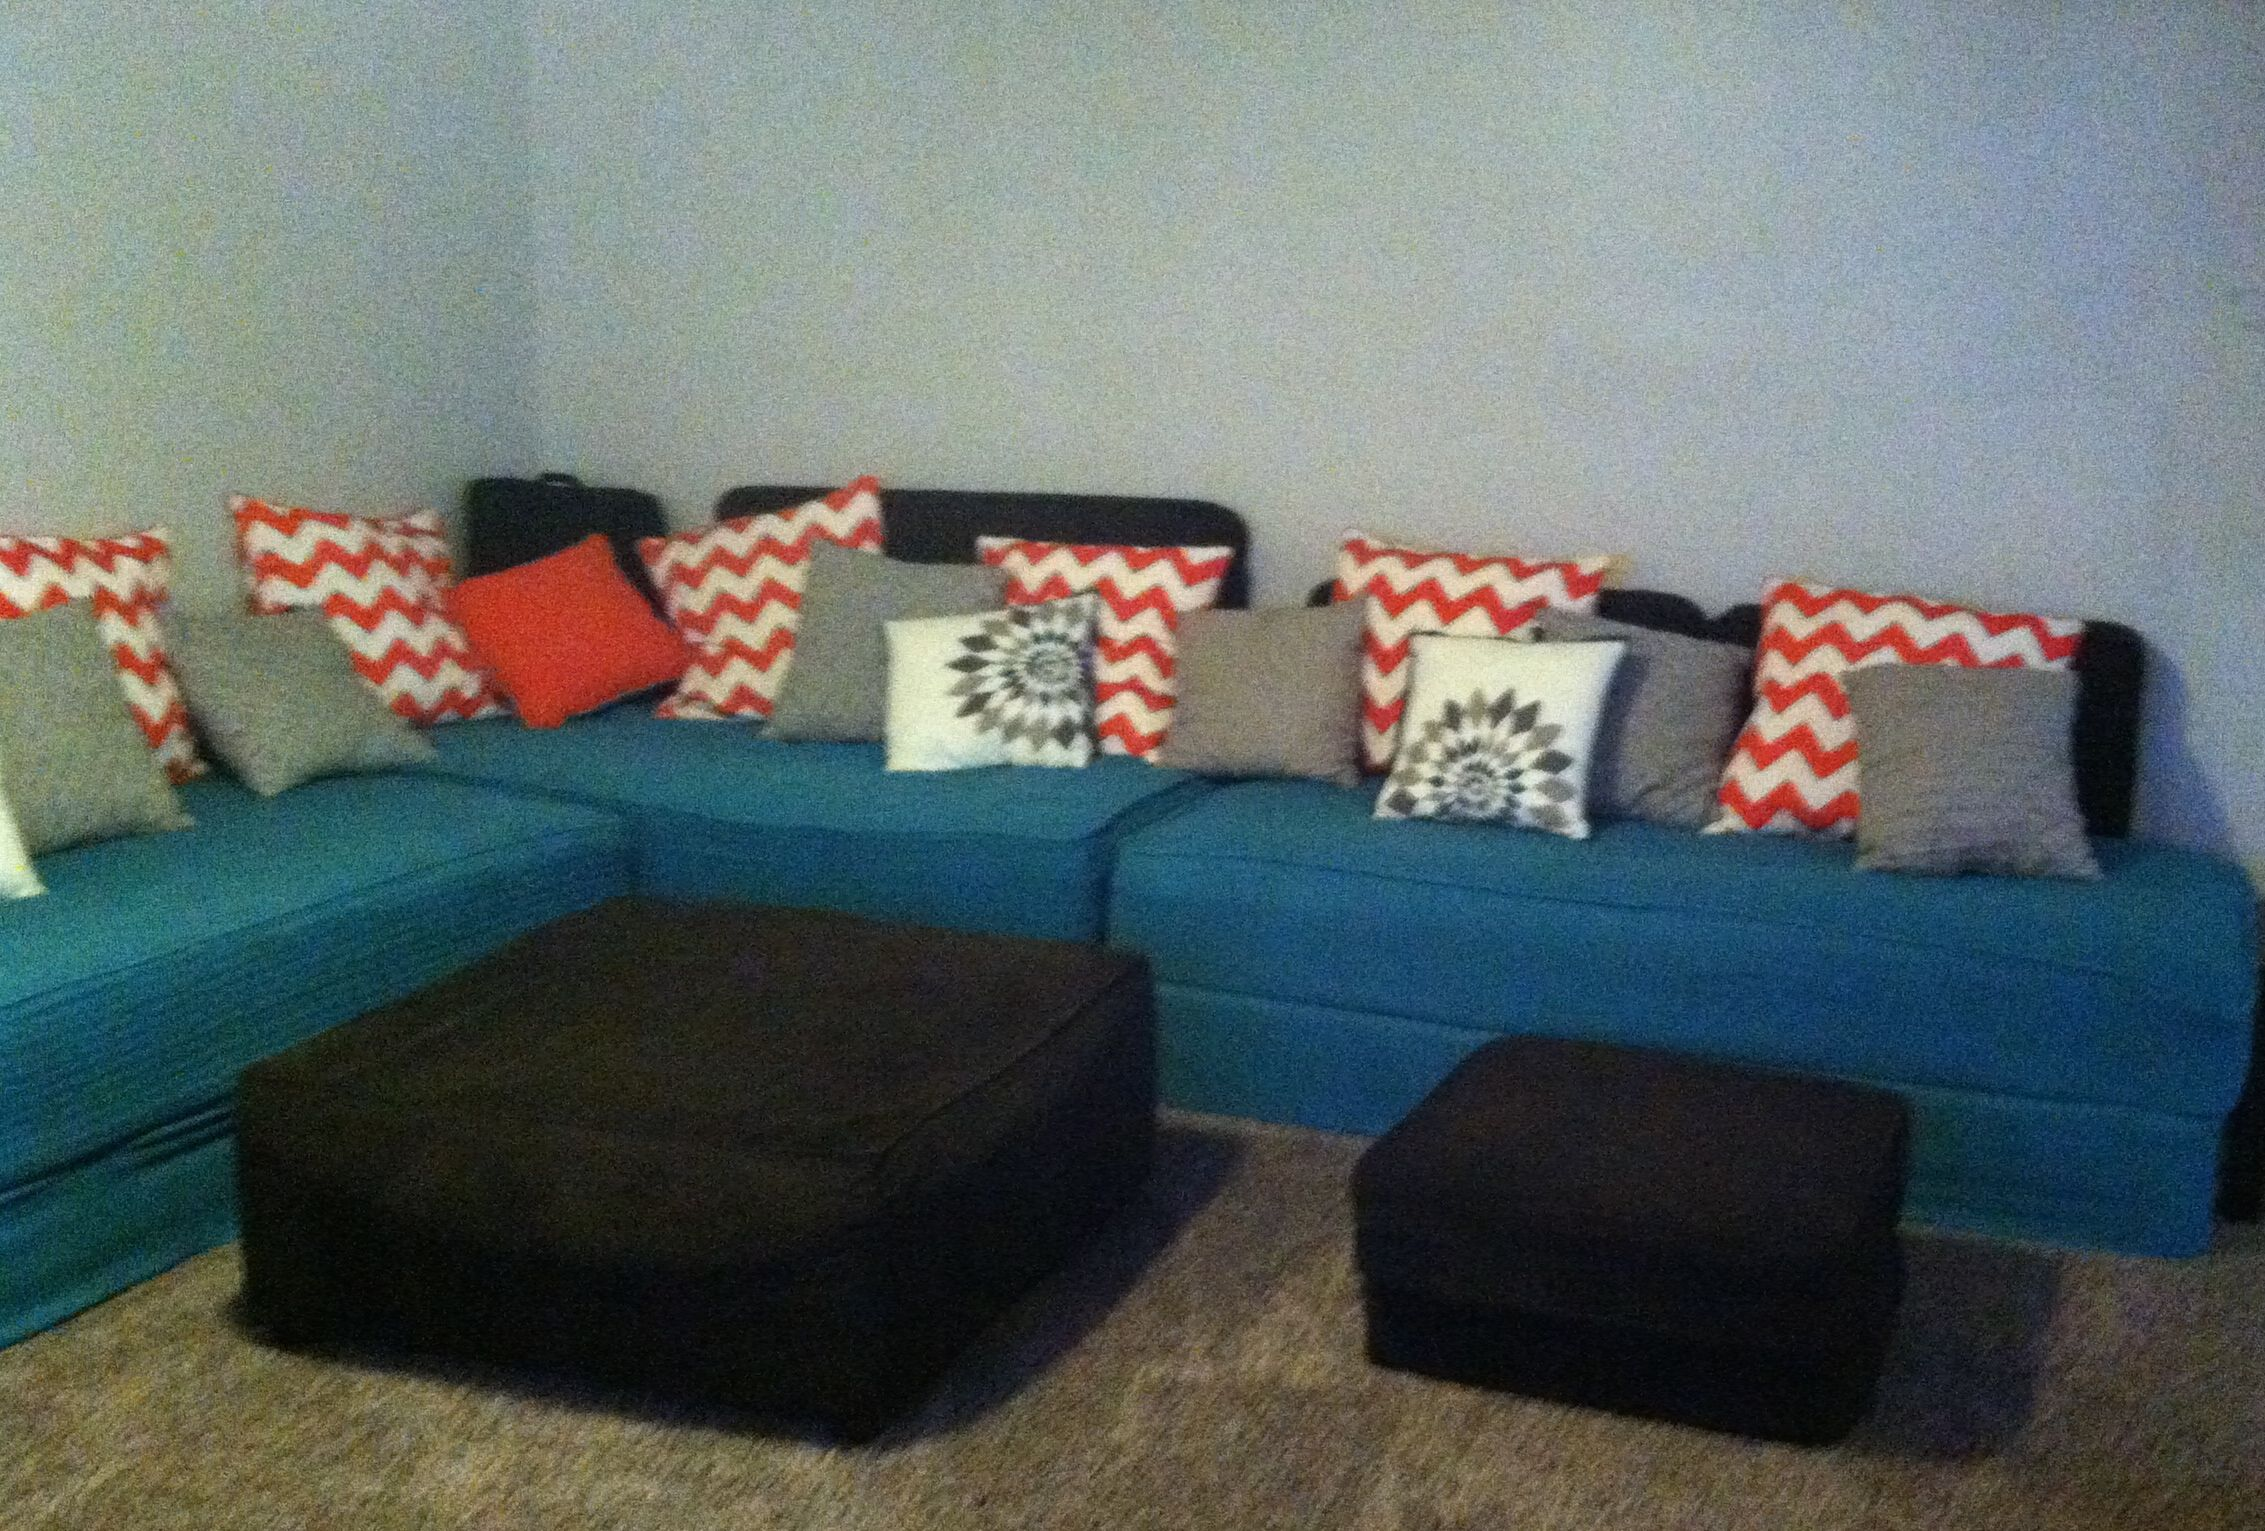 When Our Basement Flooded We Had To Throw Out The Couches